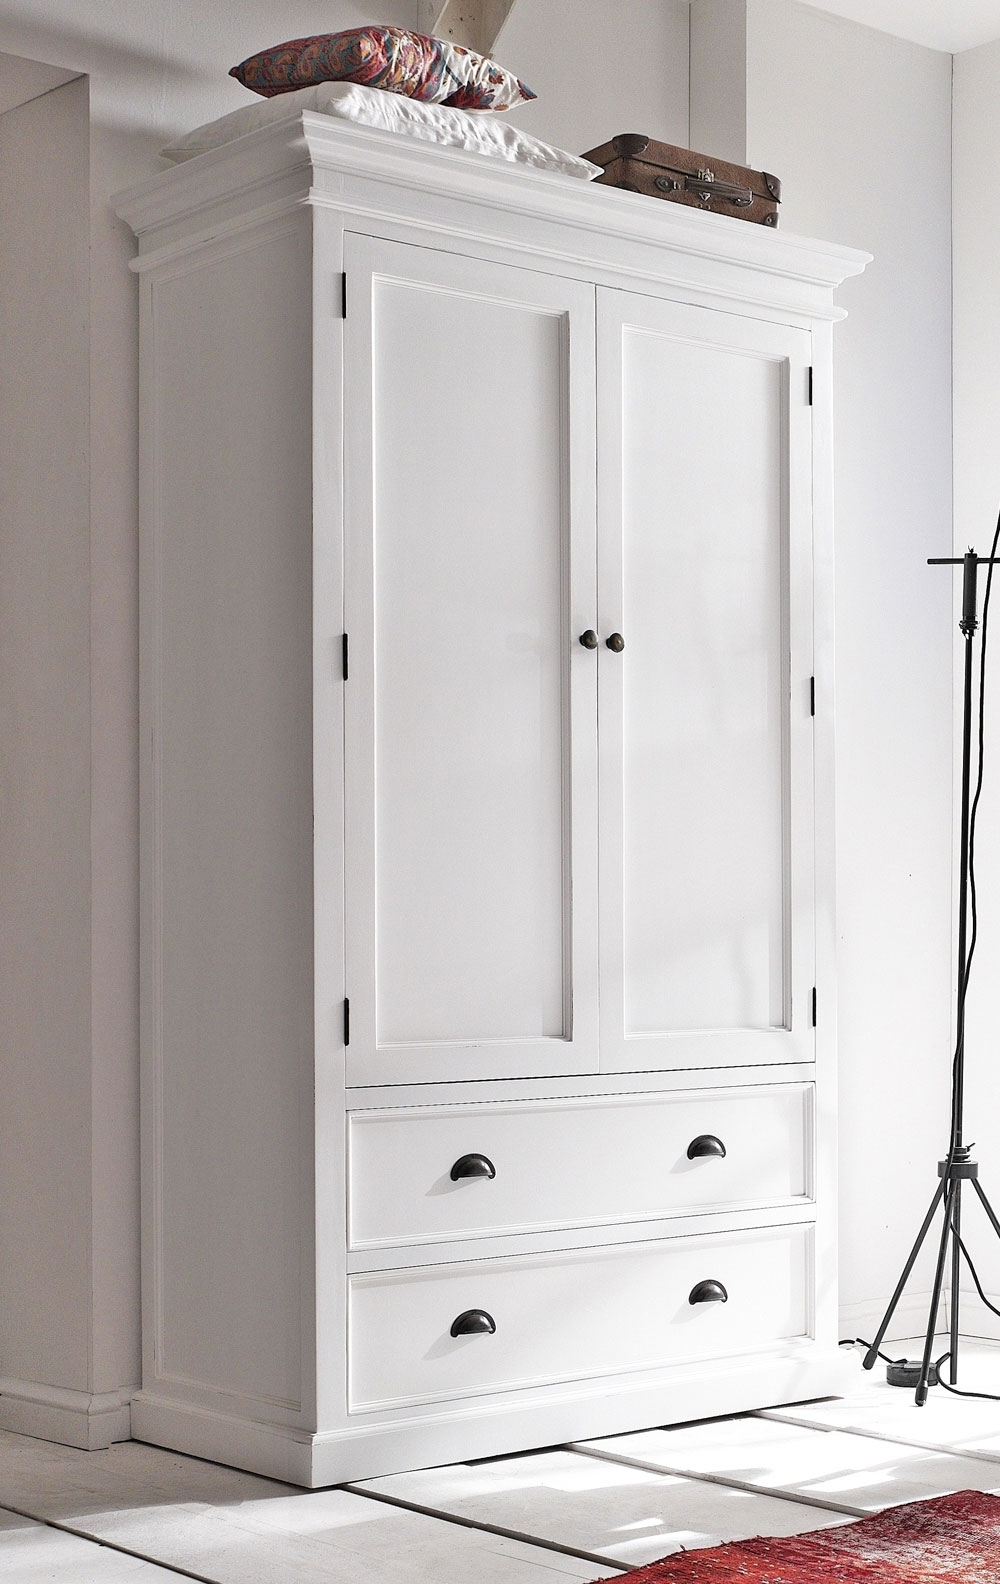 Uv Furniture Pertaining To Vintage Style Wardrobes (Gallery 1 of 15)